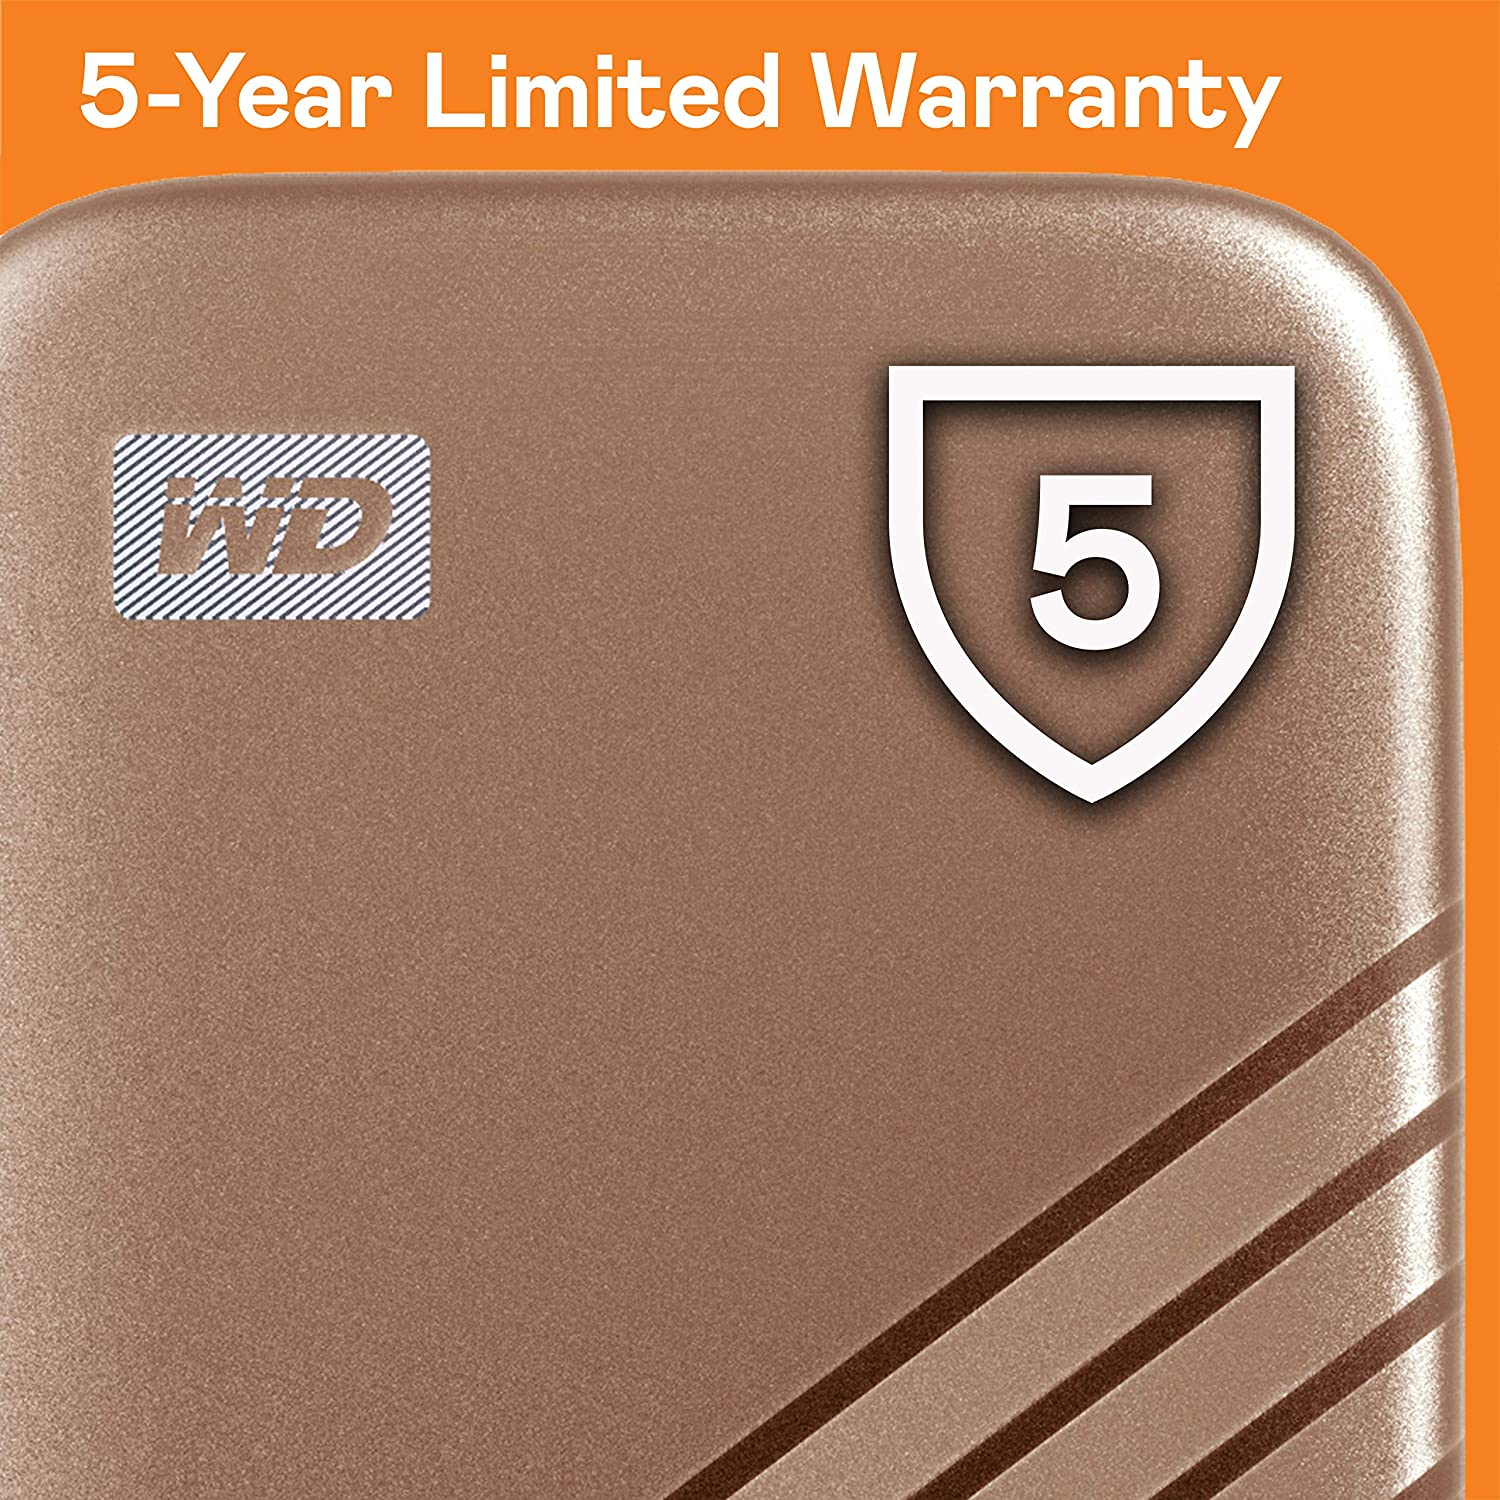 WDBAGF0010BGD-WESN Up to 1,050 MB//s WD 1TB My Passport SSD External Portable Drive Gold